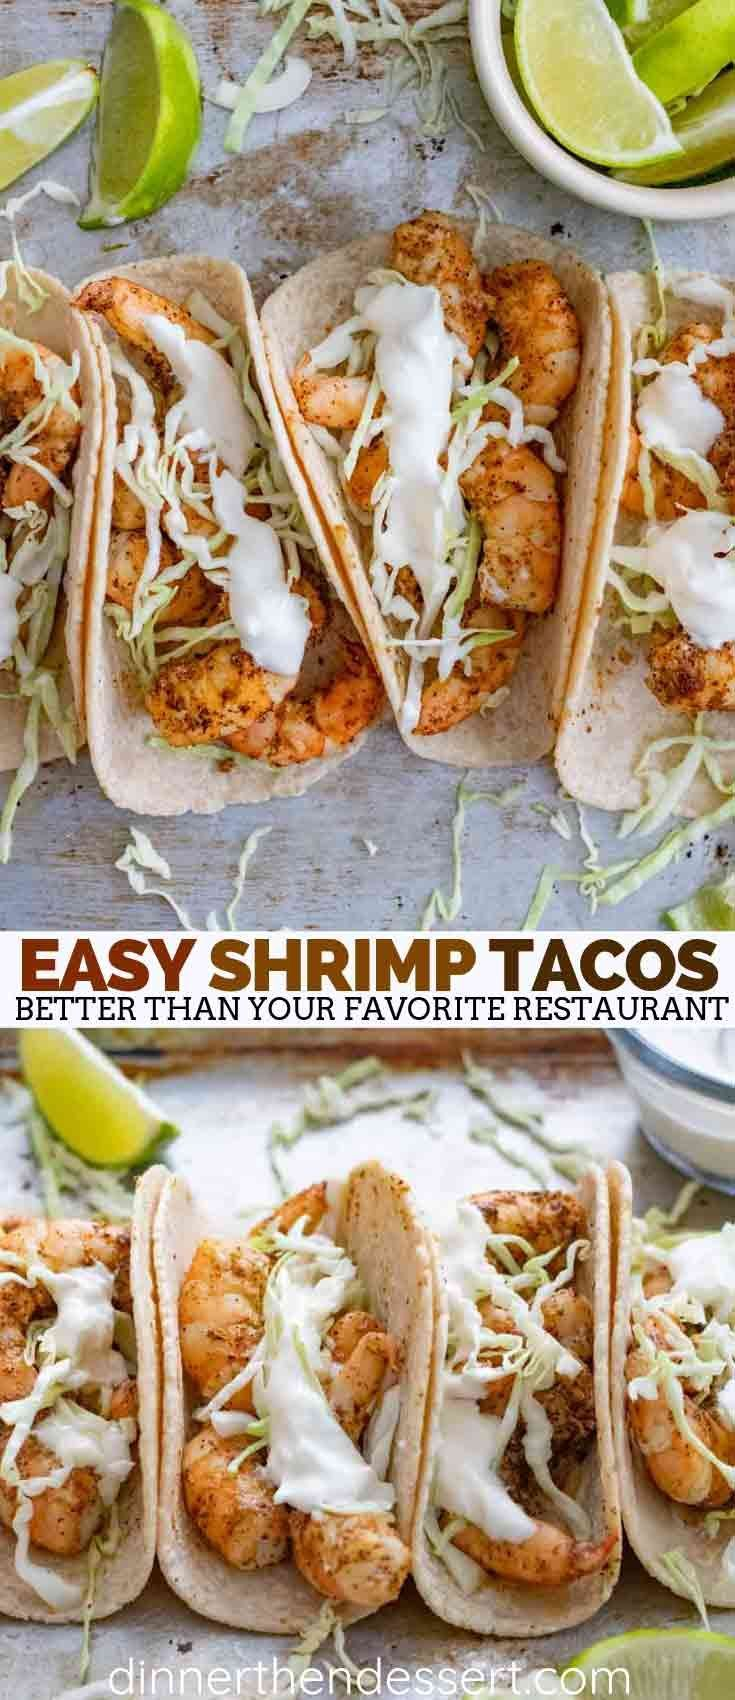 Shrimp tacos made with taco seasoning and topped with cabbage and sour cream are a quick and easy dinner that is perfect for healthy weeknight meals